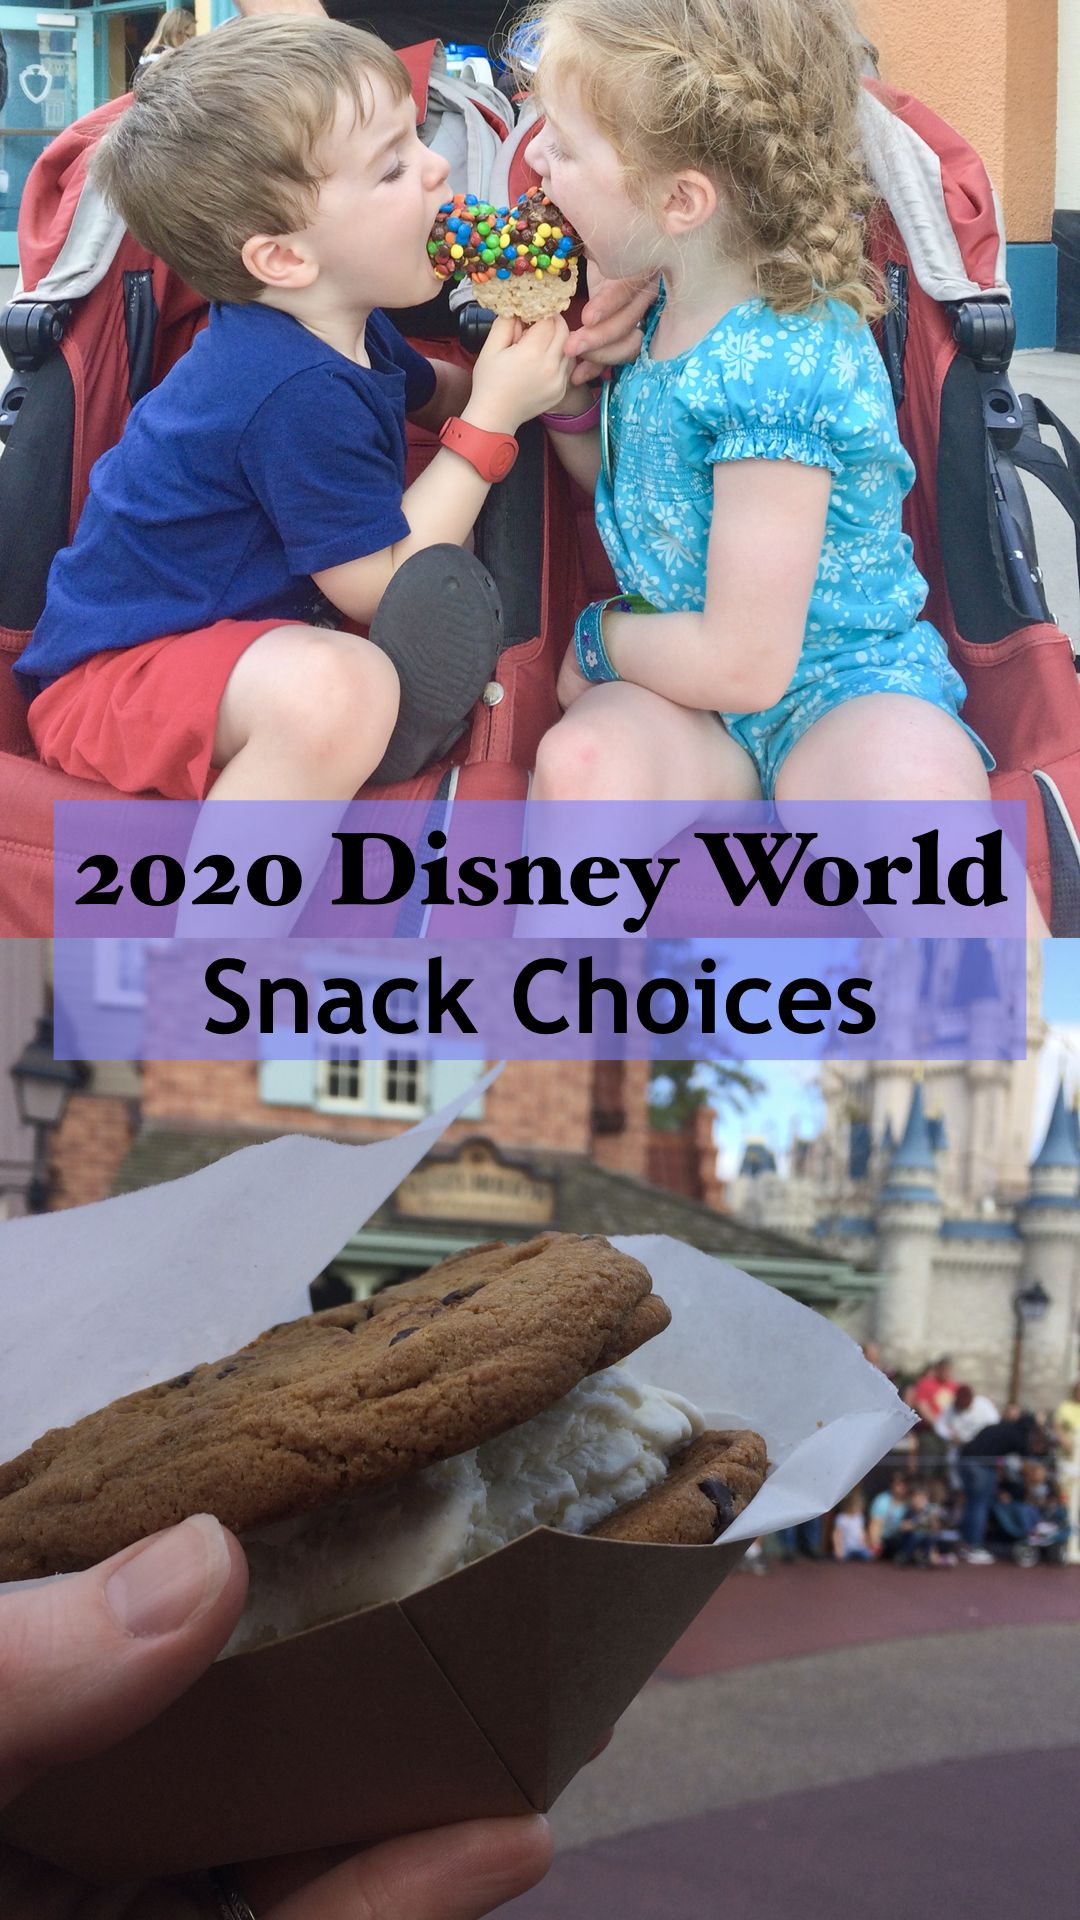 My choices for 2020 Disney World snacks. Snacks at the